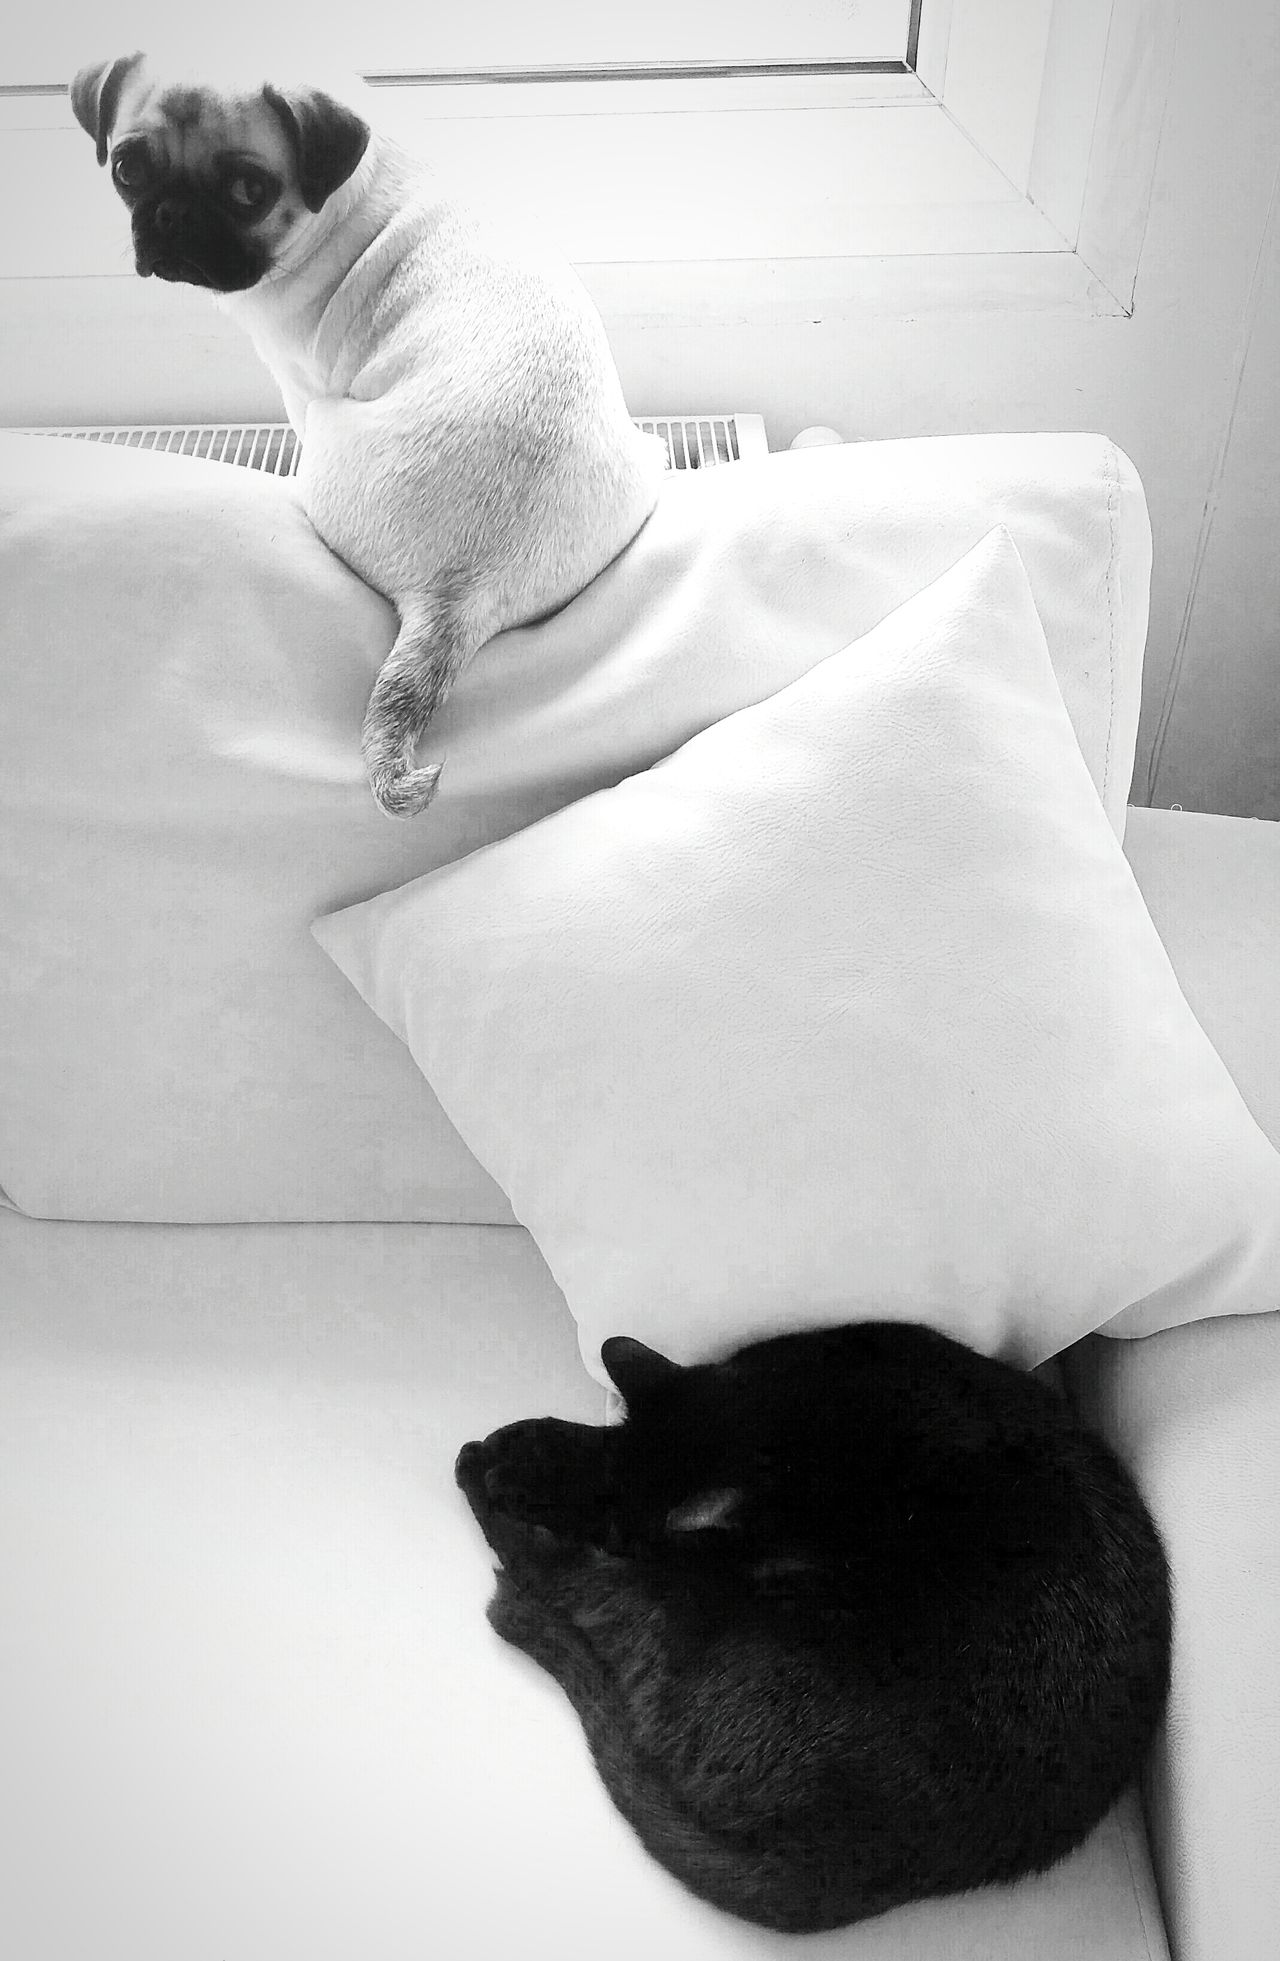 Pugandcat Pug Life  Pugs Pug Love Things ı Like Blackandwhite Black & White Blackandwhite Photography Blackandwhitephotography Black&white